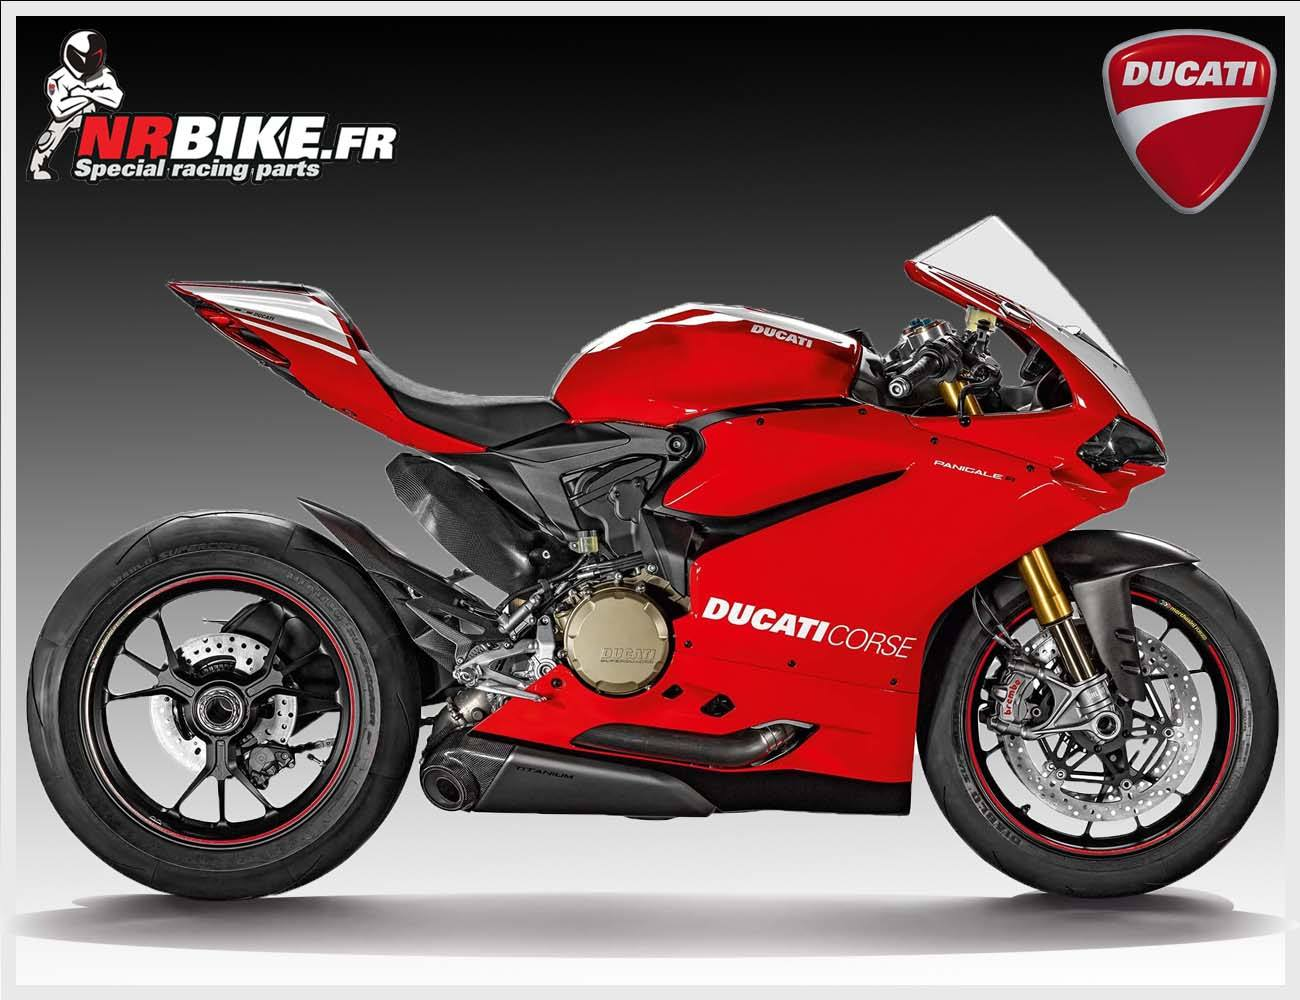 PANIGALE 1299 / S / FE